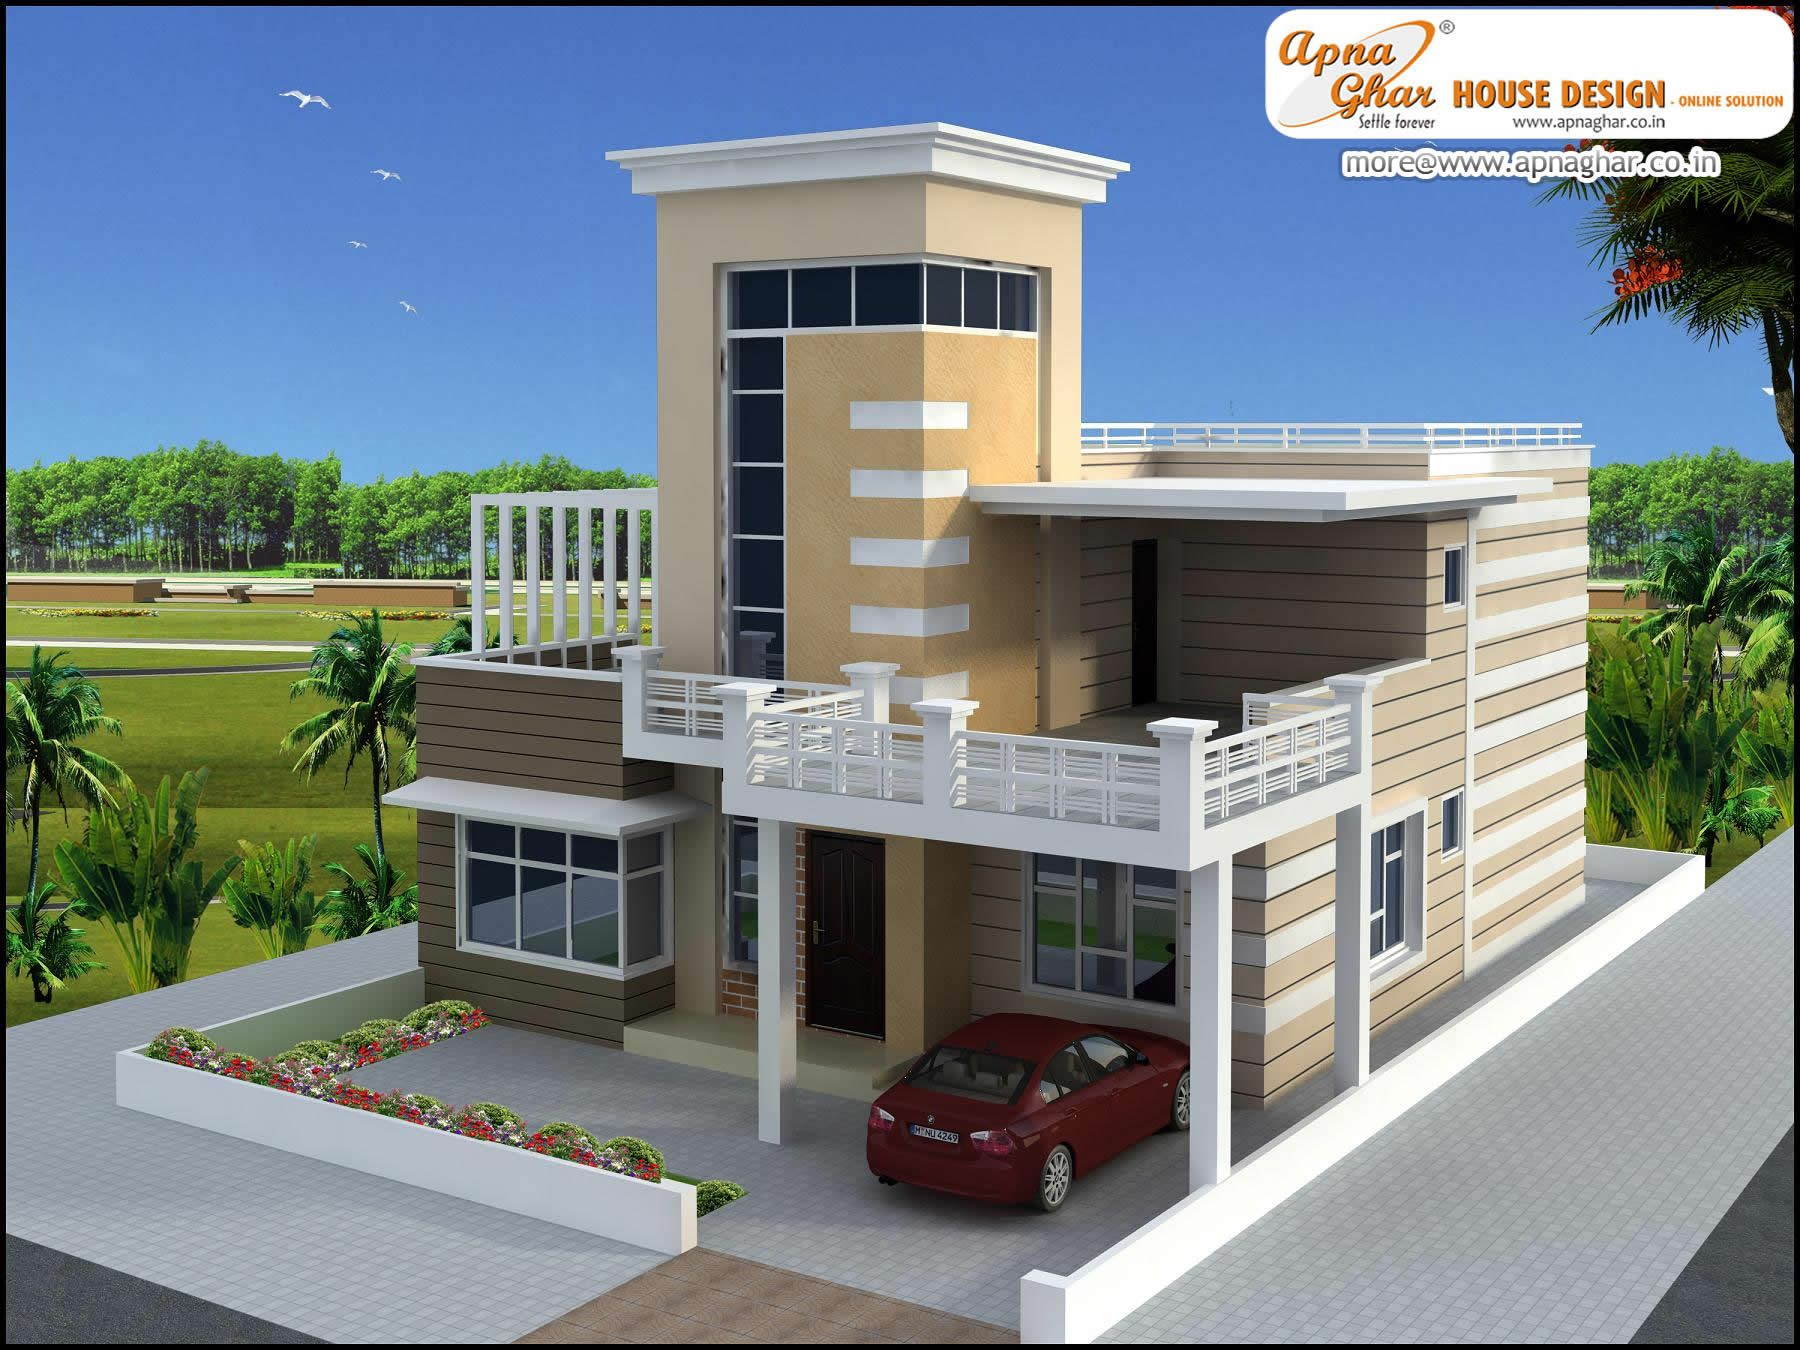 Luxury duplex 2 floors house design area 252m2 21m x for Duplex ideas